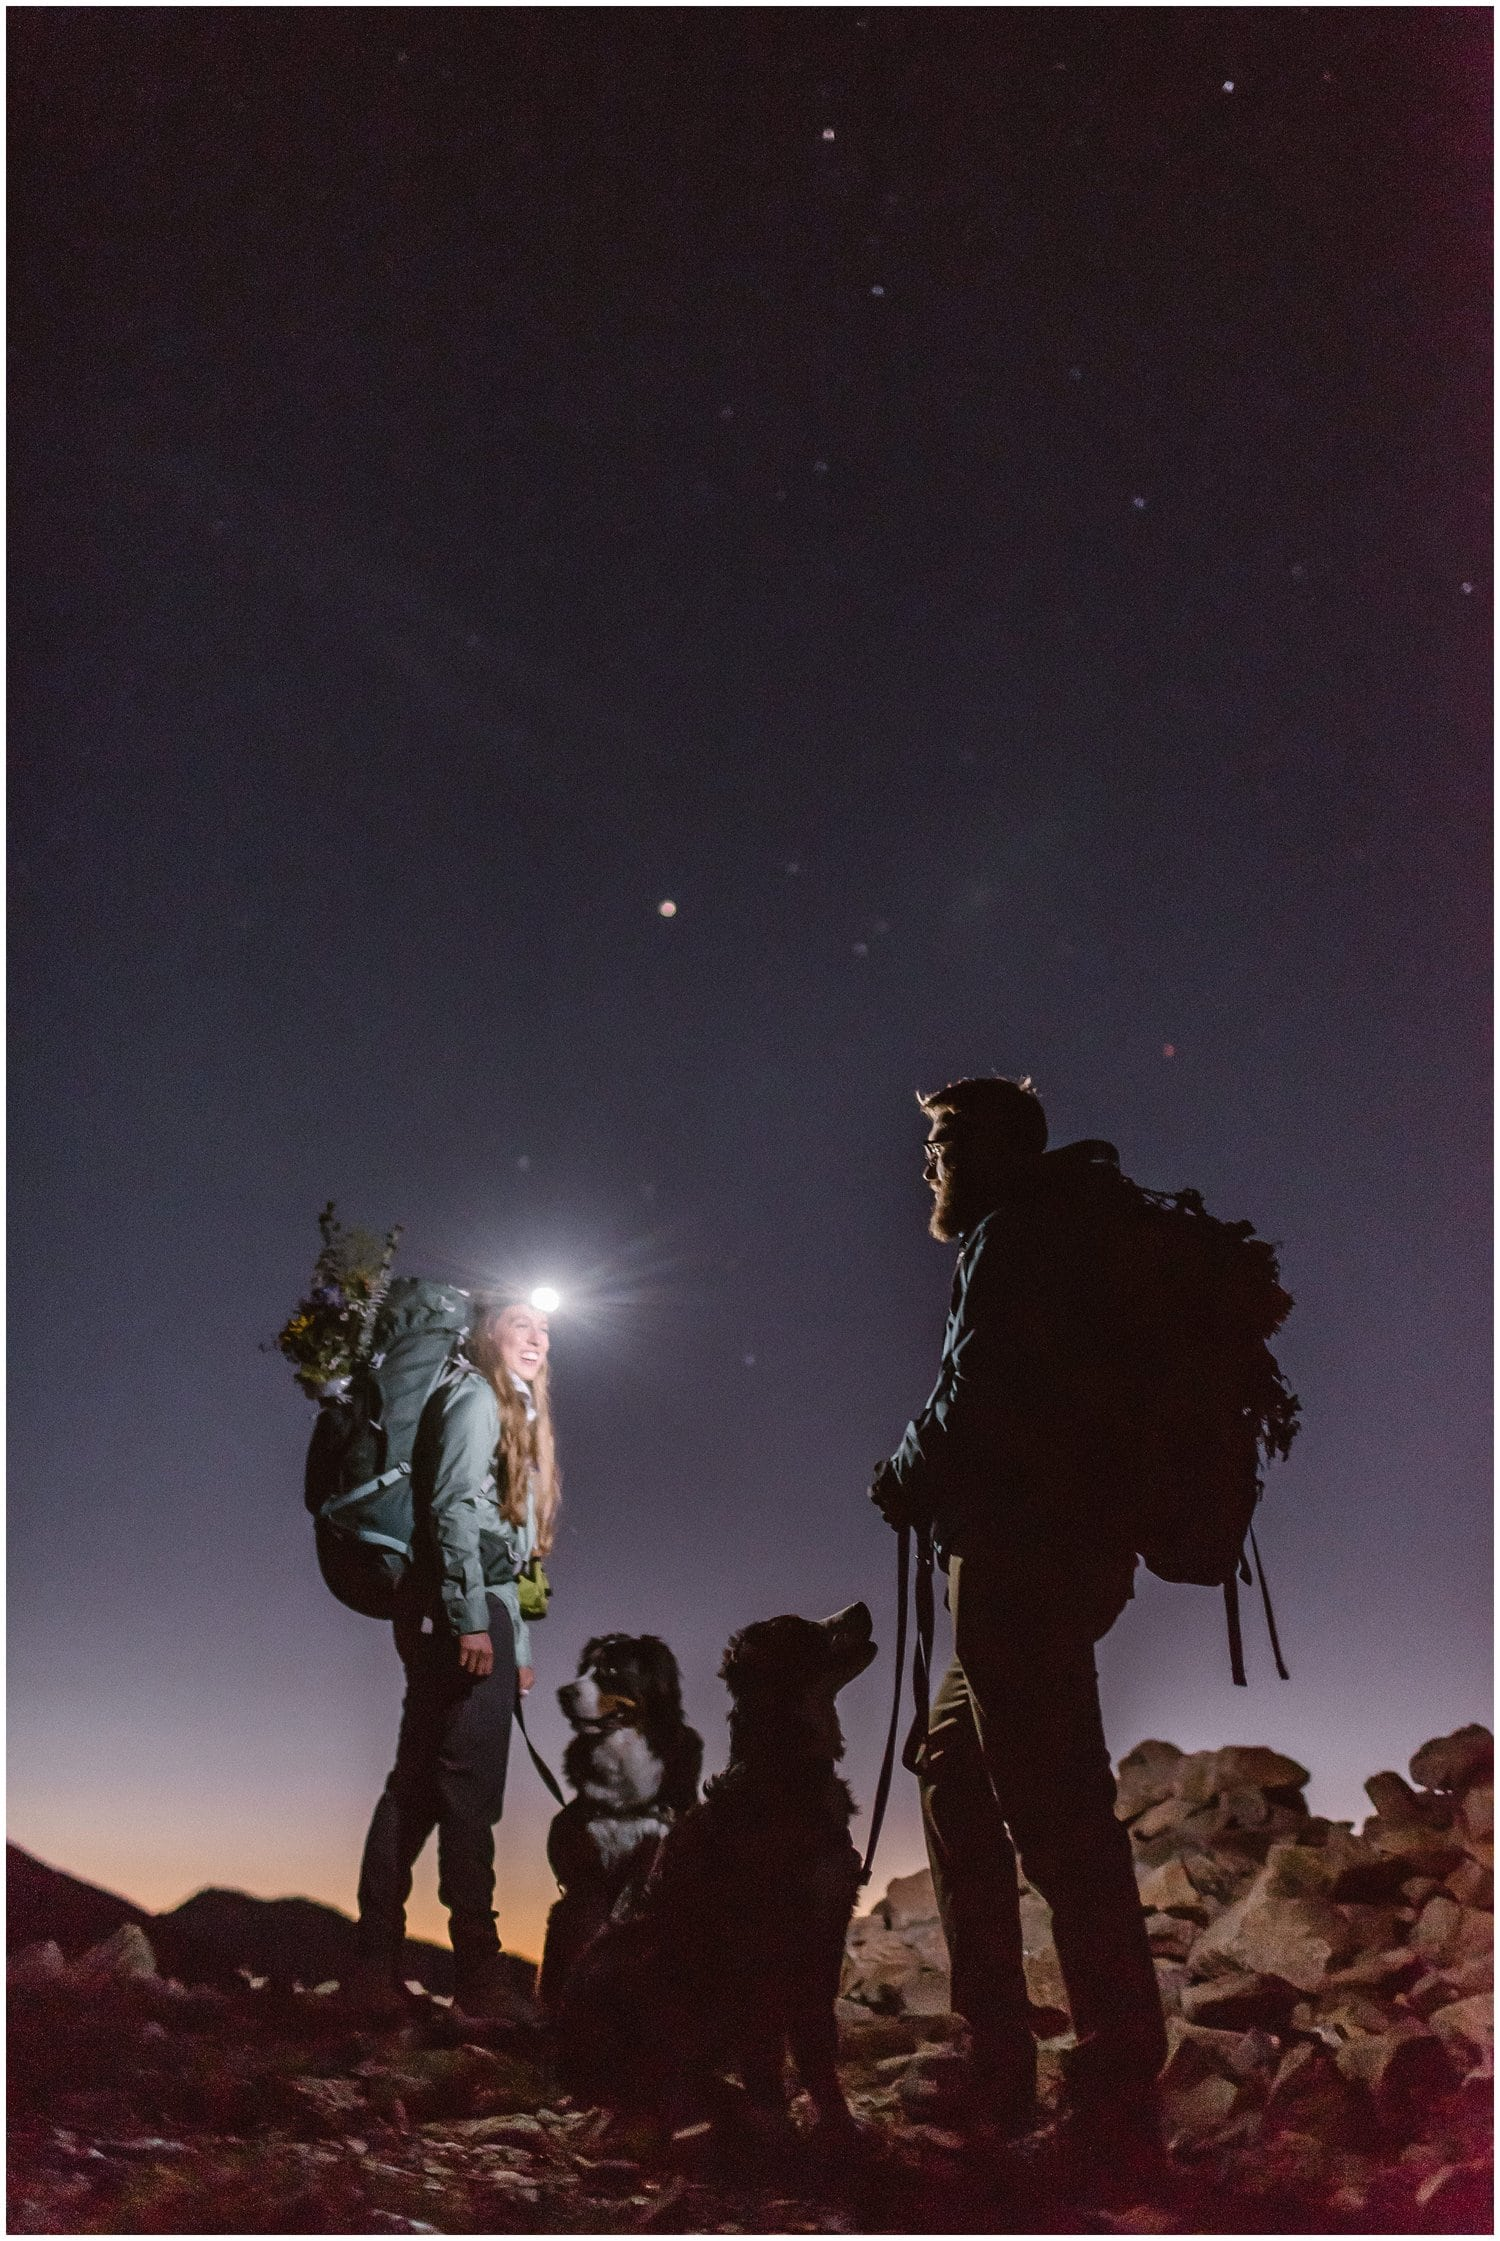 A woman and man smile at each other while hiking in the dark with their two dogs. The woman is wearing a headlight.